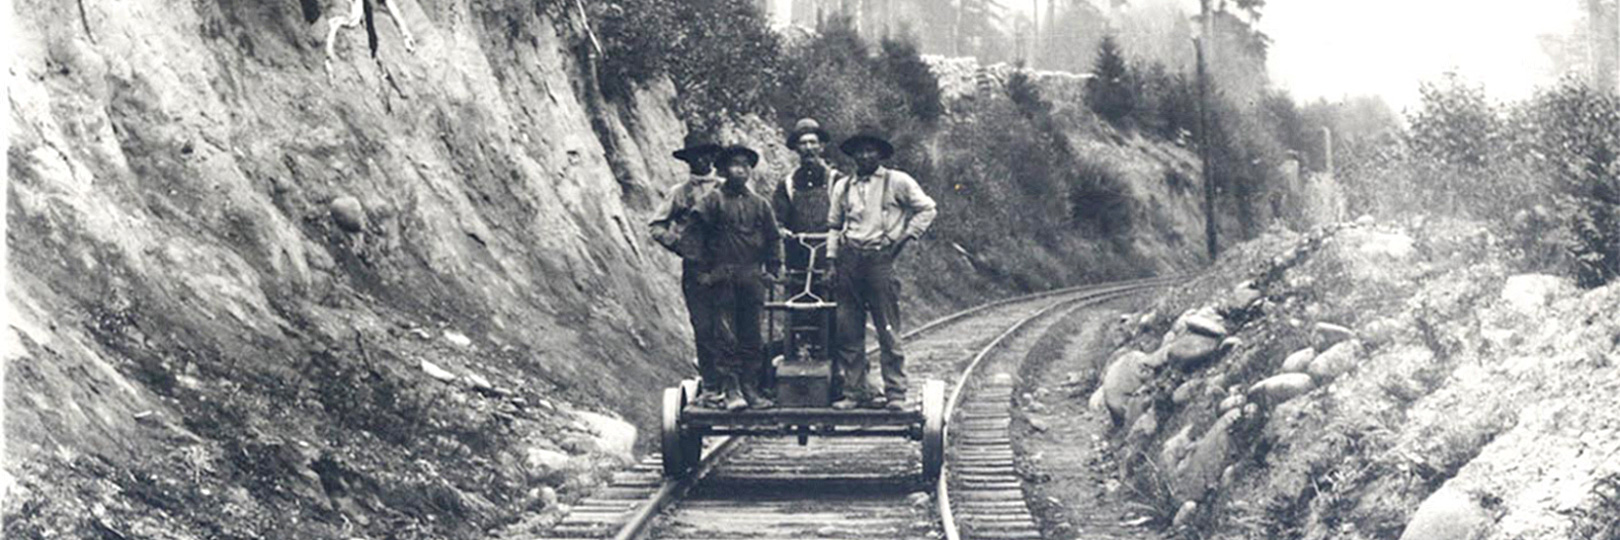 Chinese Railroad Workers